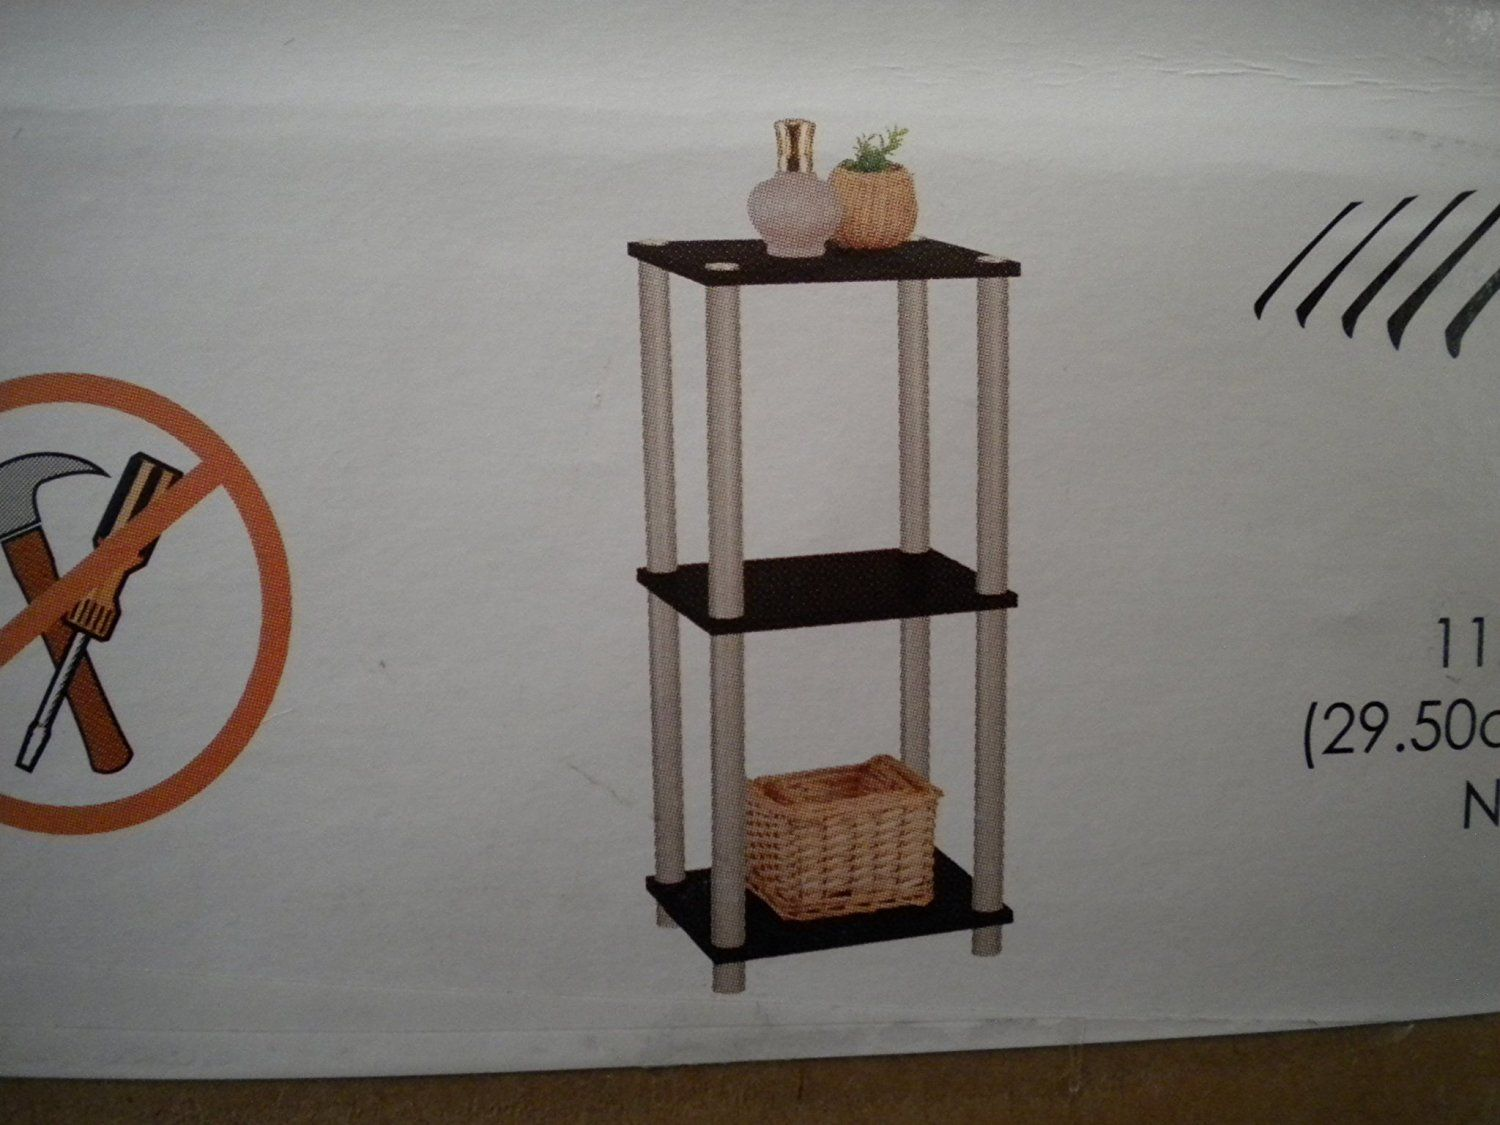 3 Tier Accent Shelf Quickly View This Special Product Click The Image Corner Shelves Shelves Corner Shelves Decor